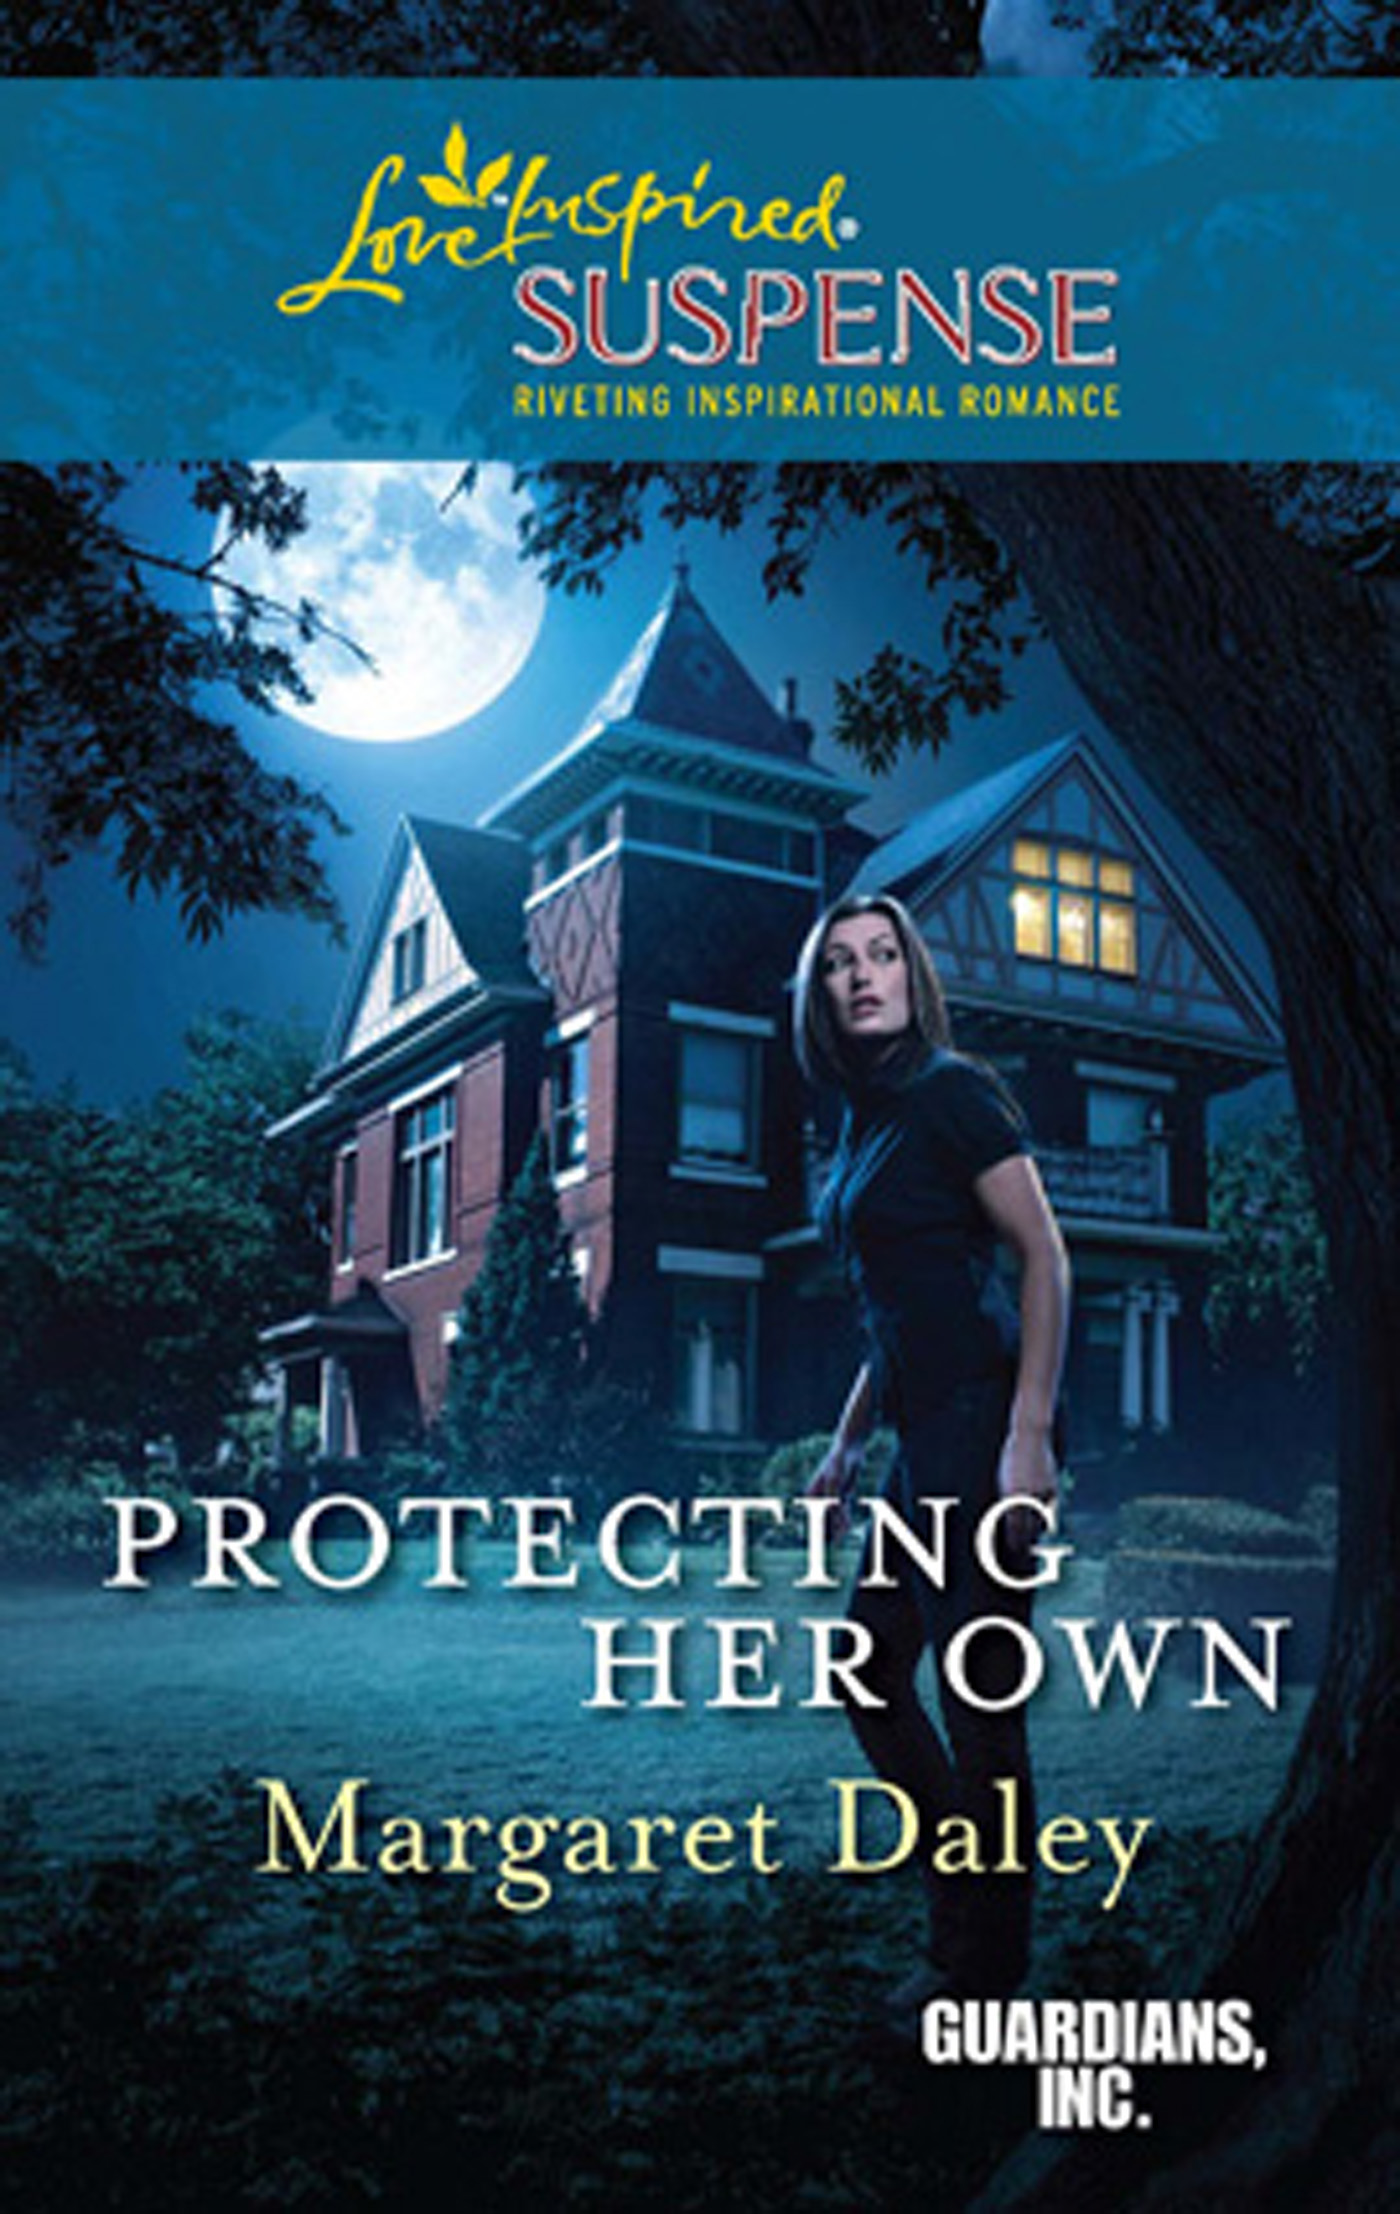 Protecting Her Own (Mills & Boon Love Inspired Suspense) (Guardians,  Inc. - Book 2)